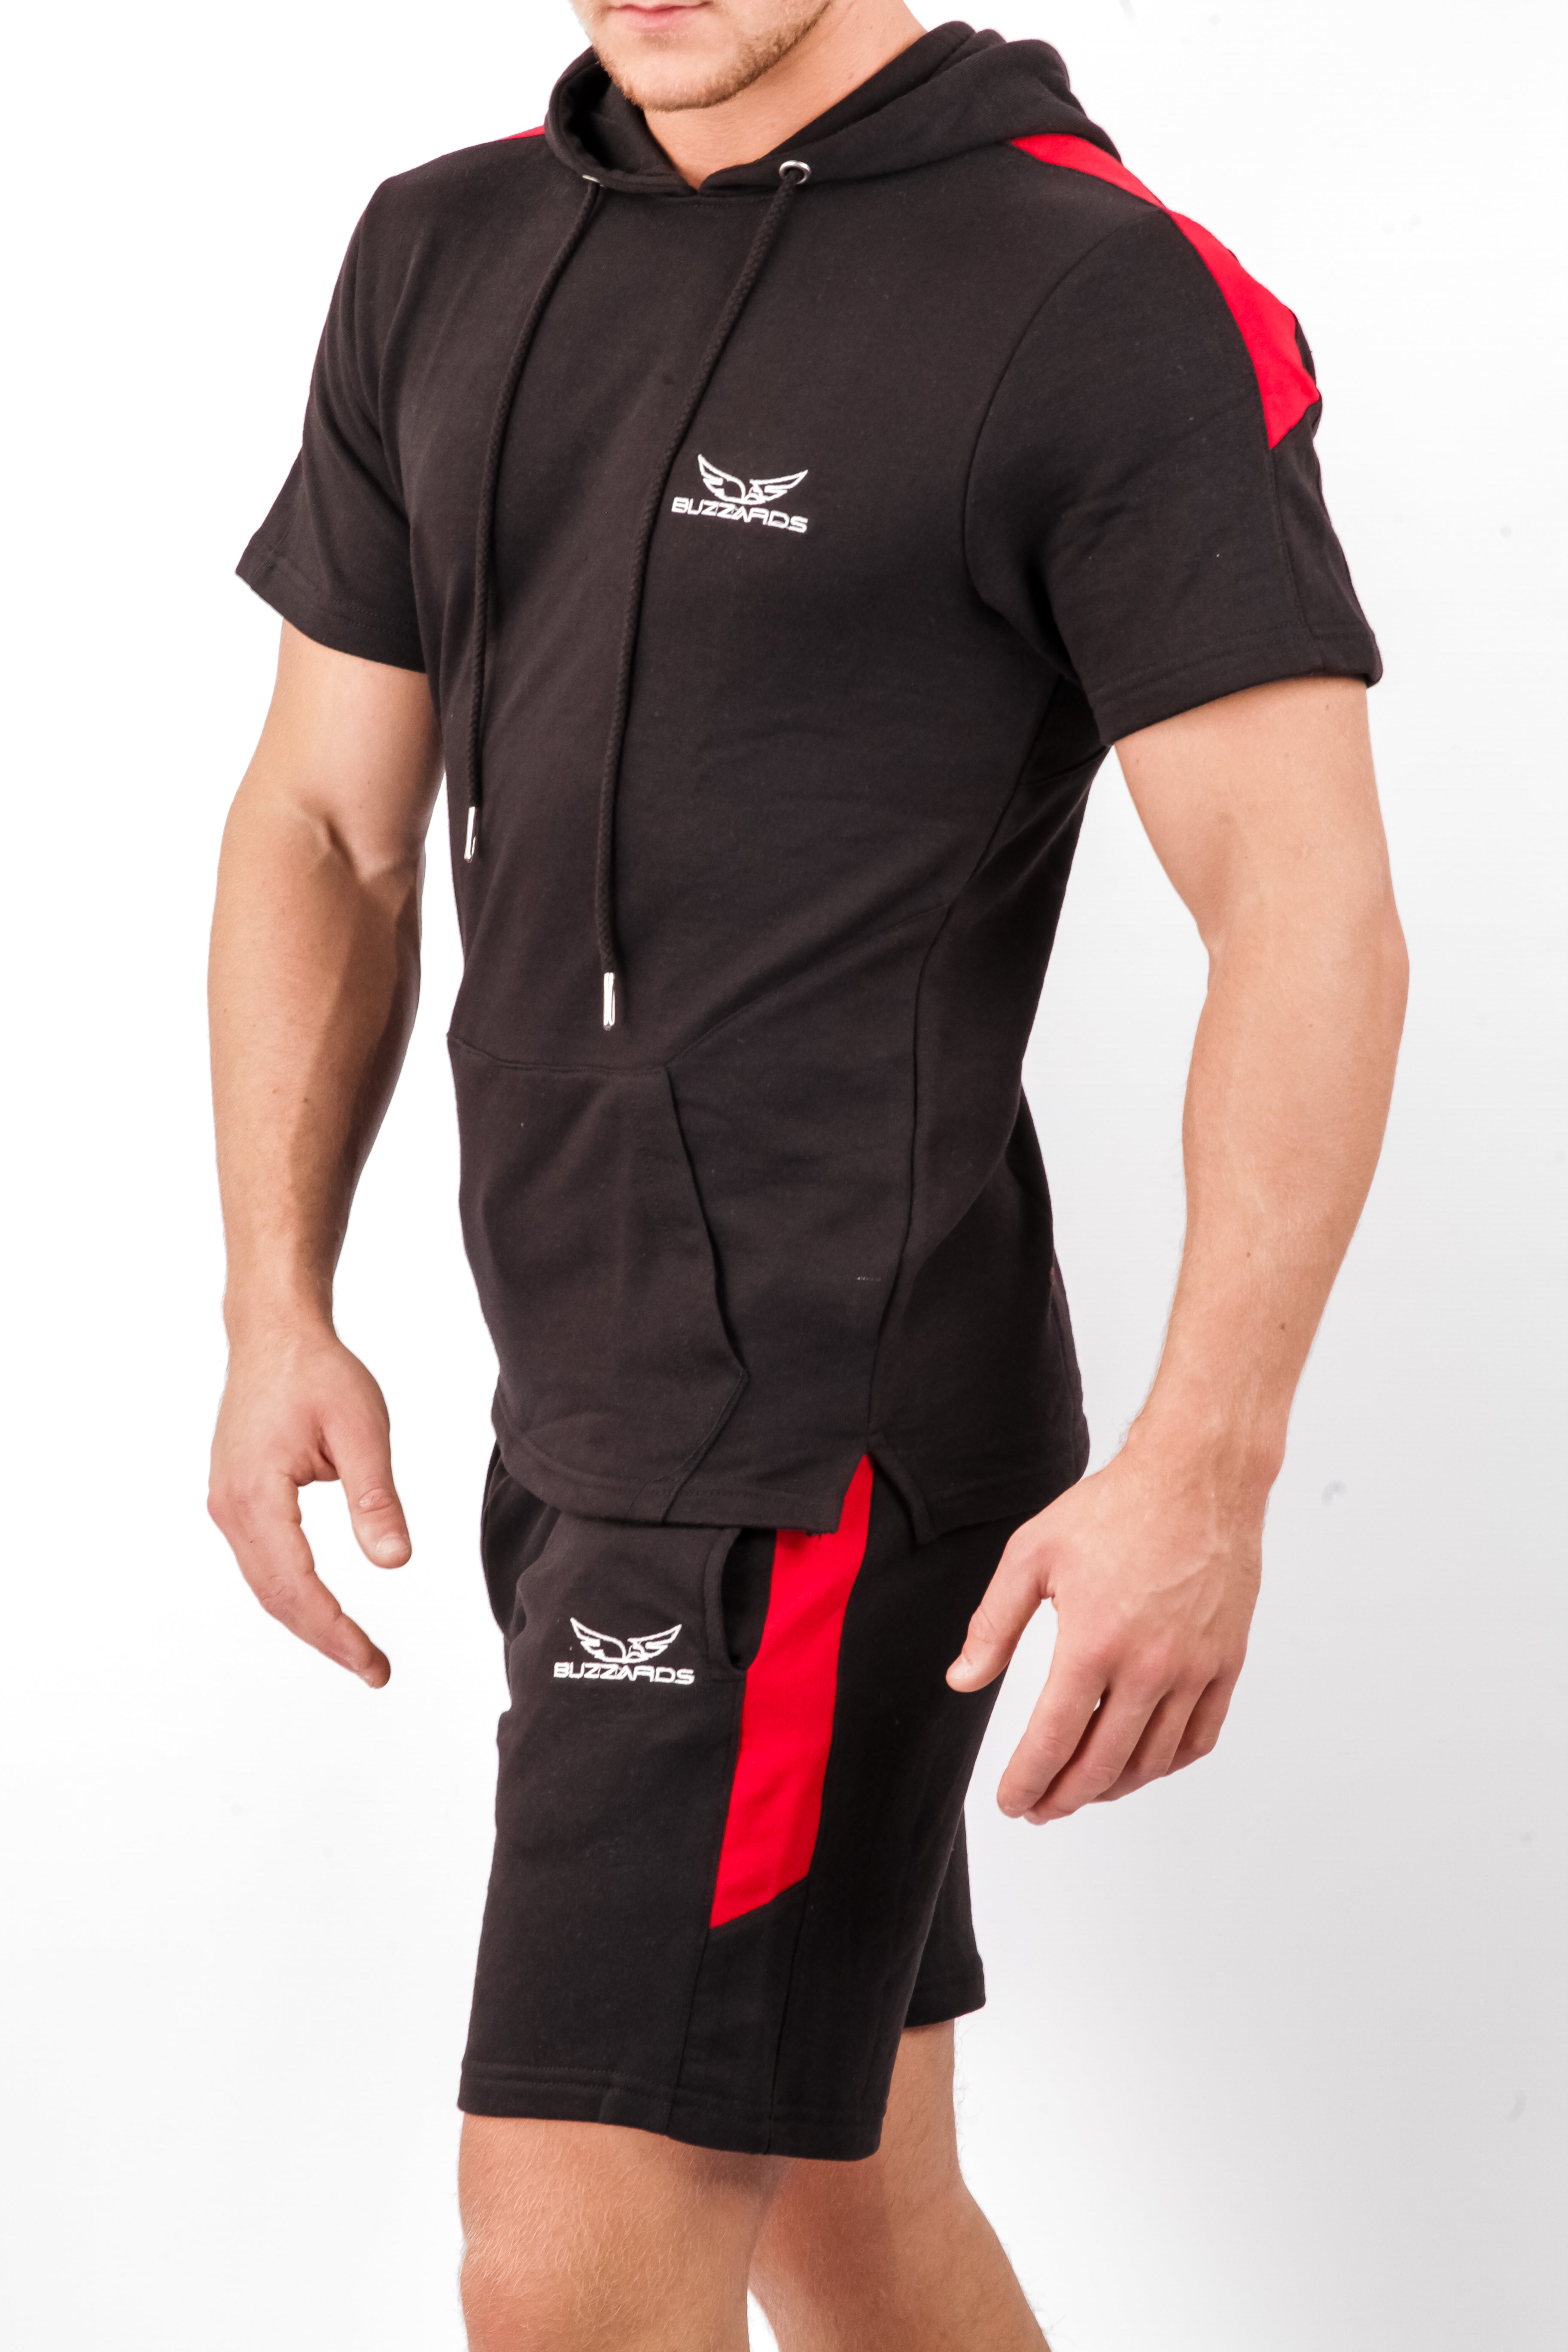 Elate Short Sleeve Hoodies (Free Contrasting Shorts worth £19.99)